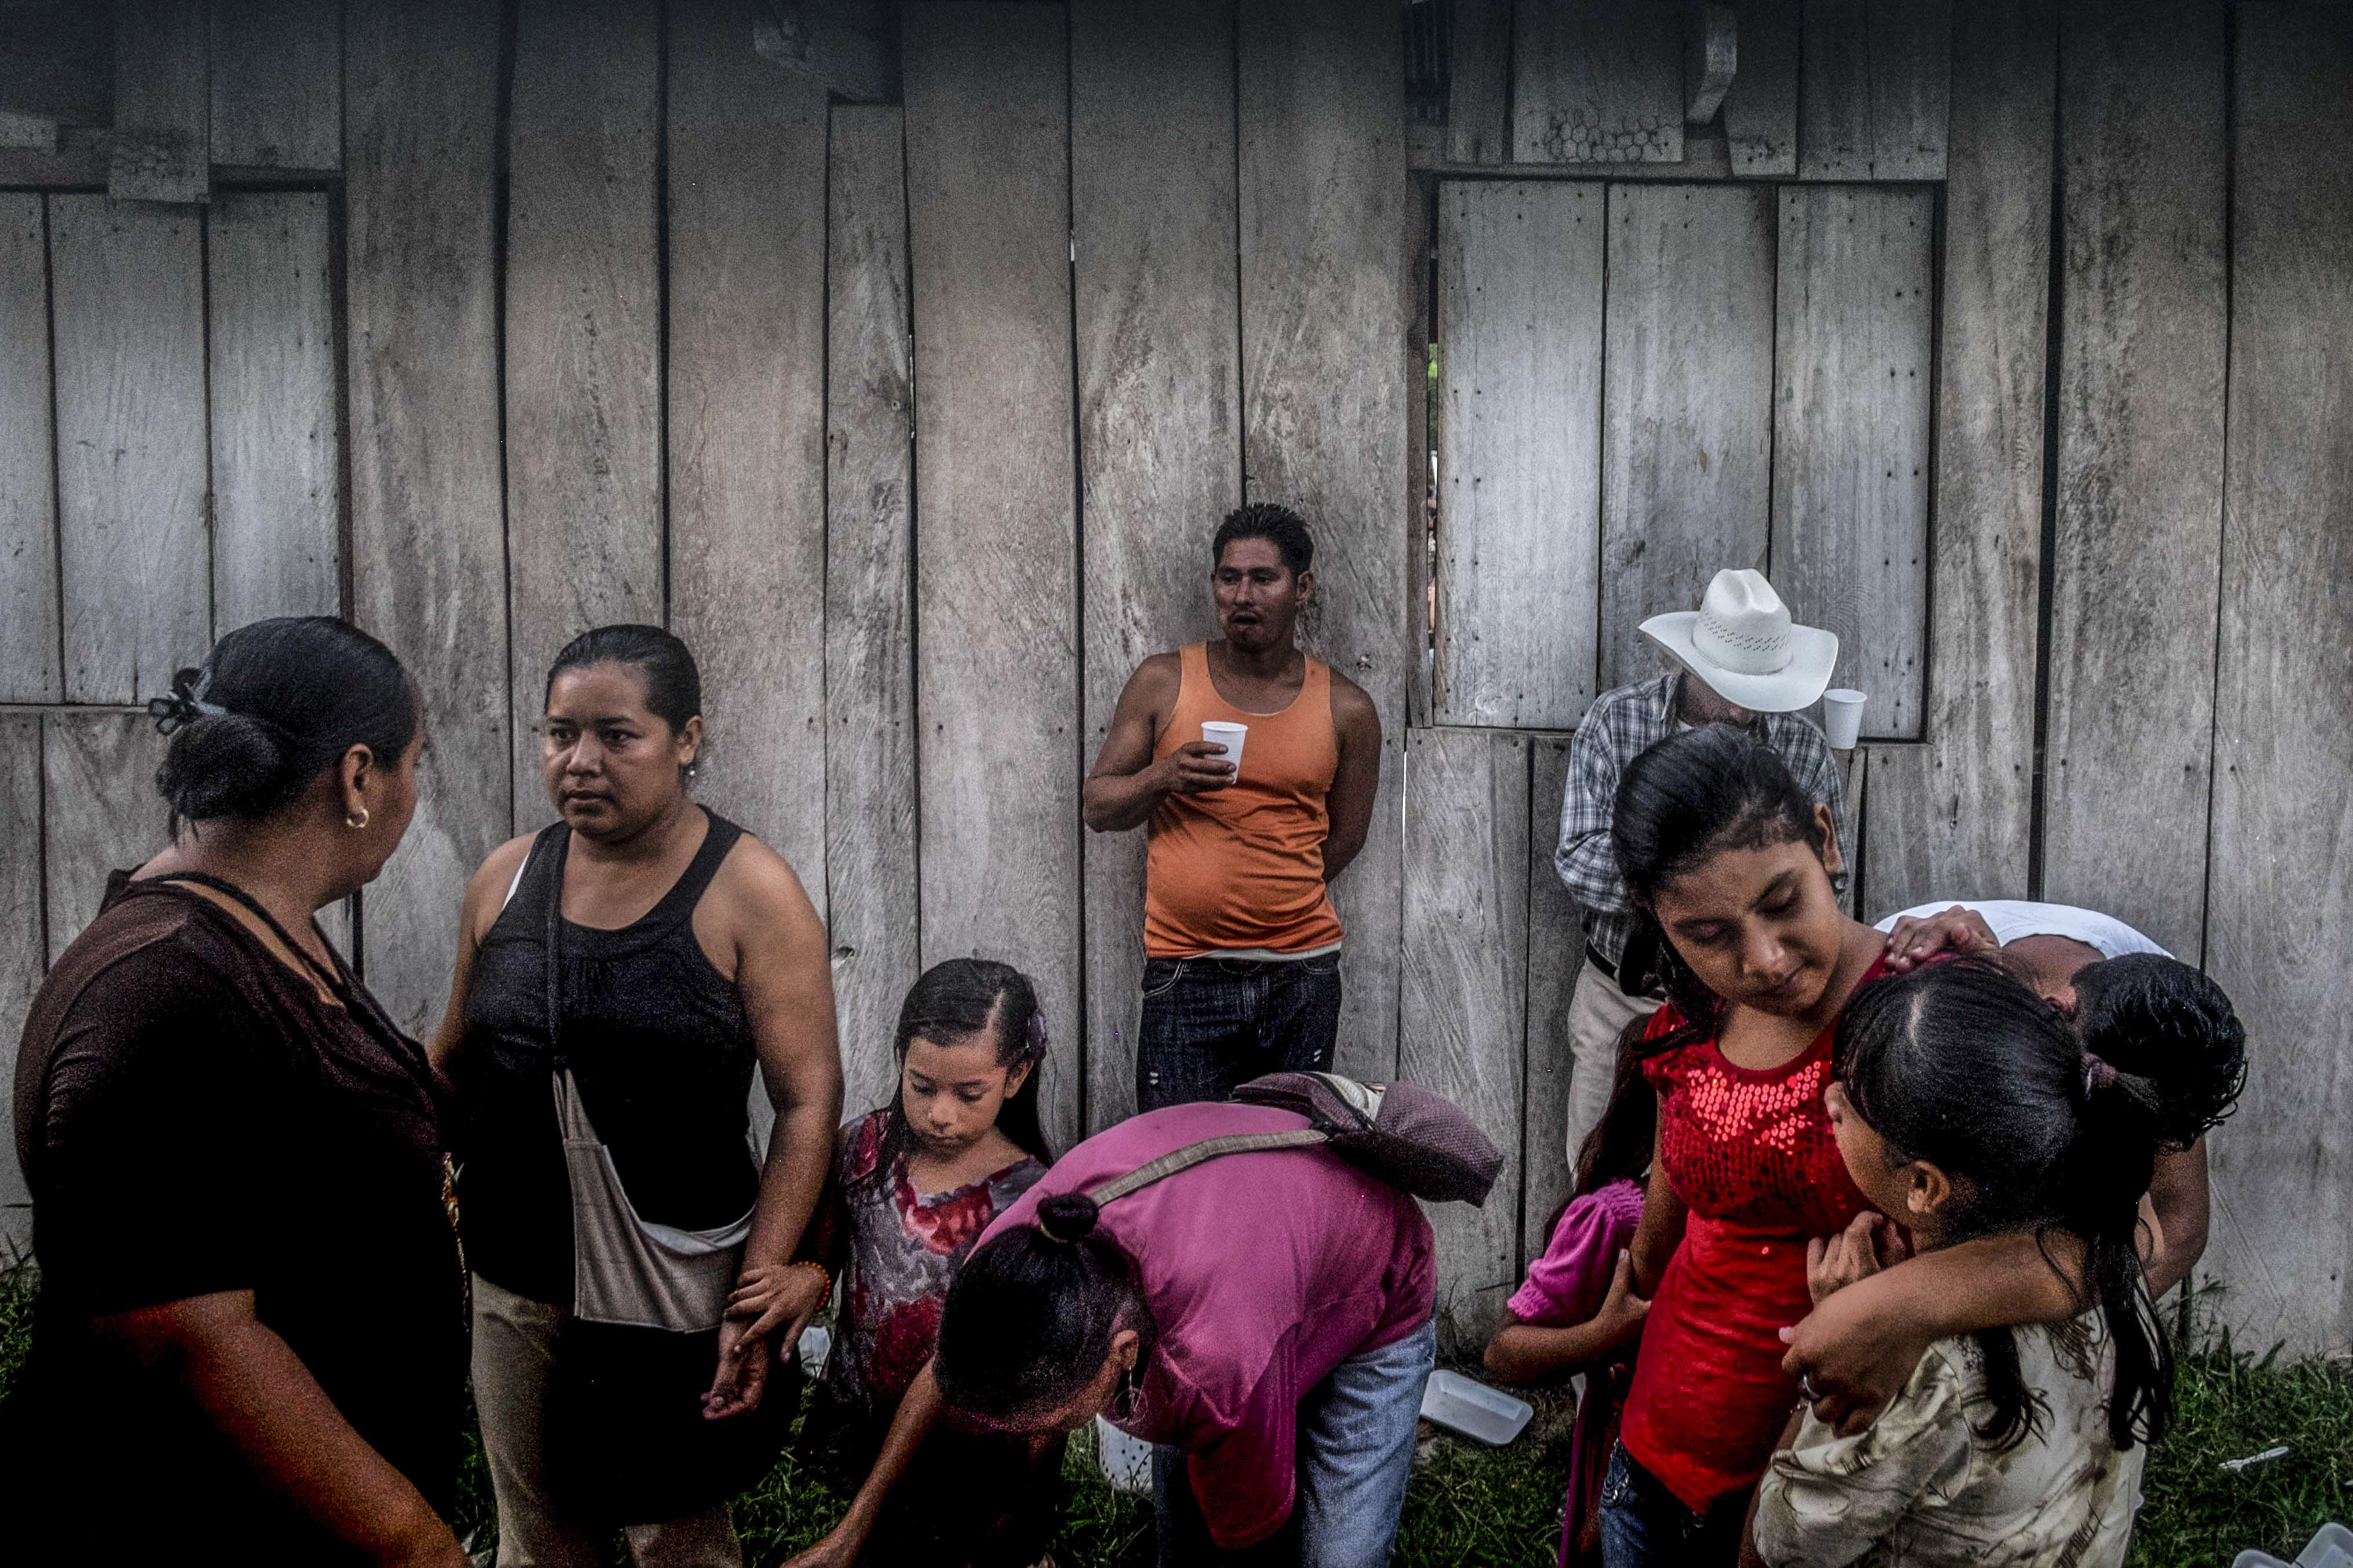 <p>Members of the small community of Guadalupe Carney, near the city of Tocoa, Bajo Aguán region, Honduras. Another sector that has suffered a disproportionate number of attacks are peasants groups engaged in land conflicts with large agro-business enterprises – for instance, in the Bajo Aguán, where more than 100 campesino land rights activists have been killed during a drawn-out conflict with the Dinant Corporation. (Photo: Francesca Volpi) </p>